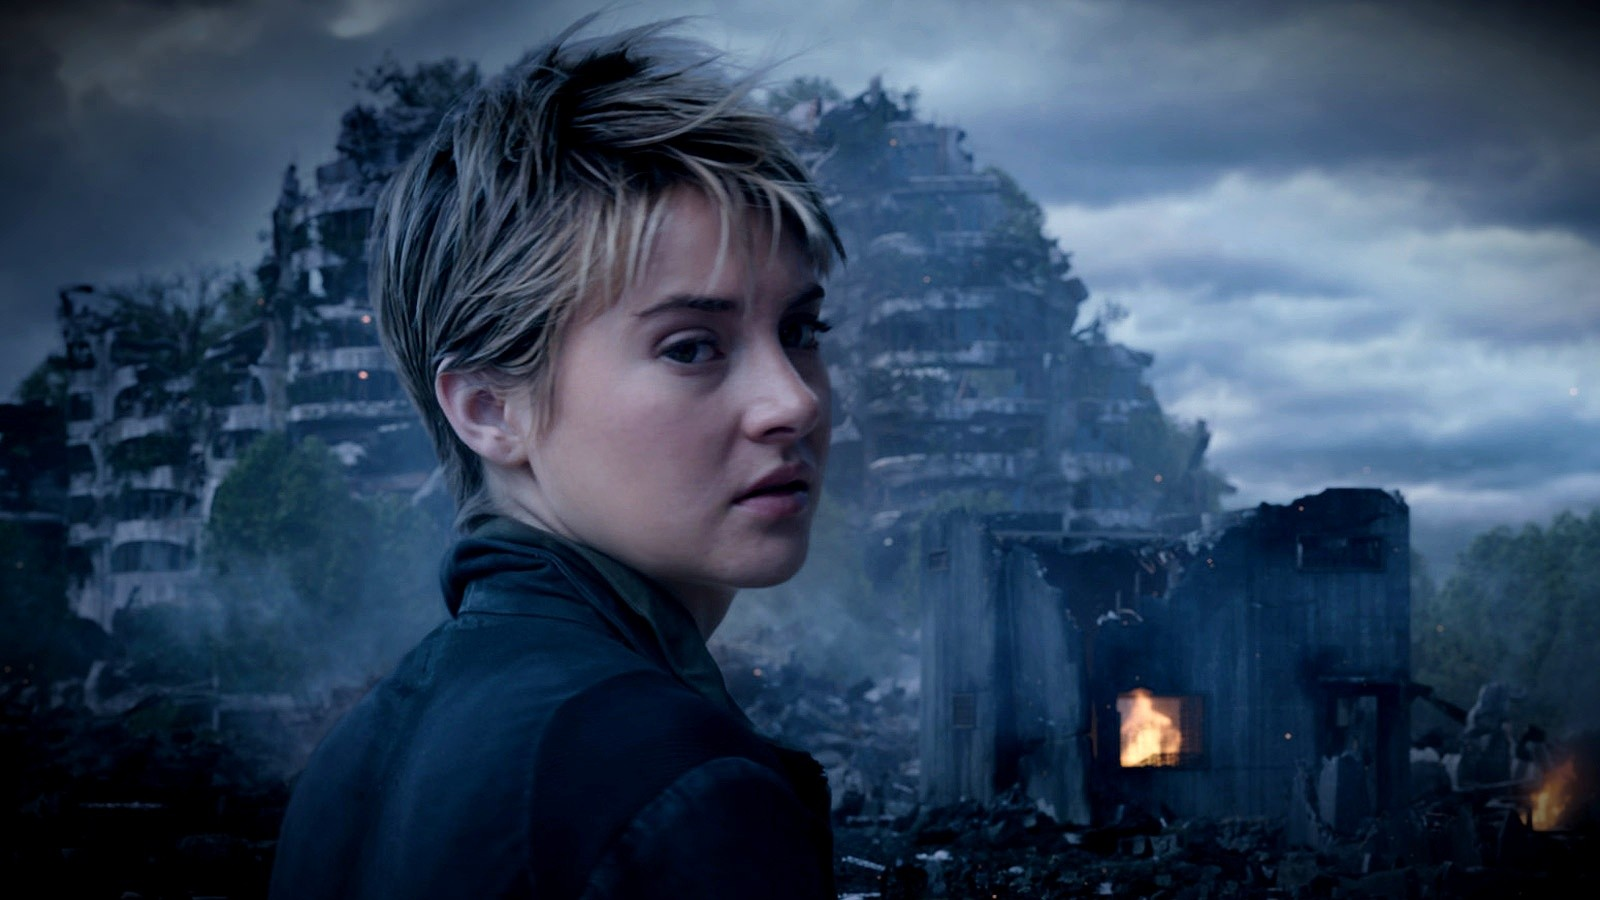 Shailene Woodley stars as Tris in Summit Entertainment's The Divergent Series: Insurgent (2015)